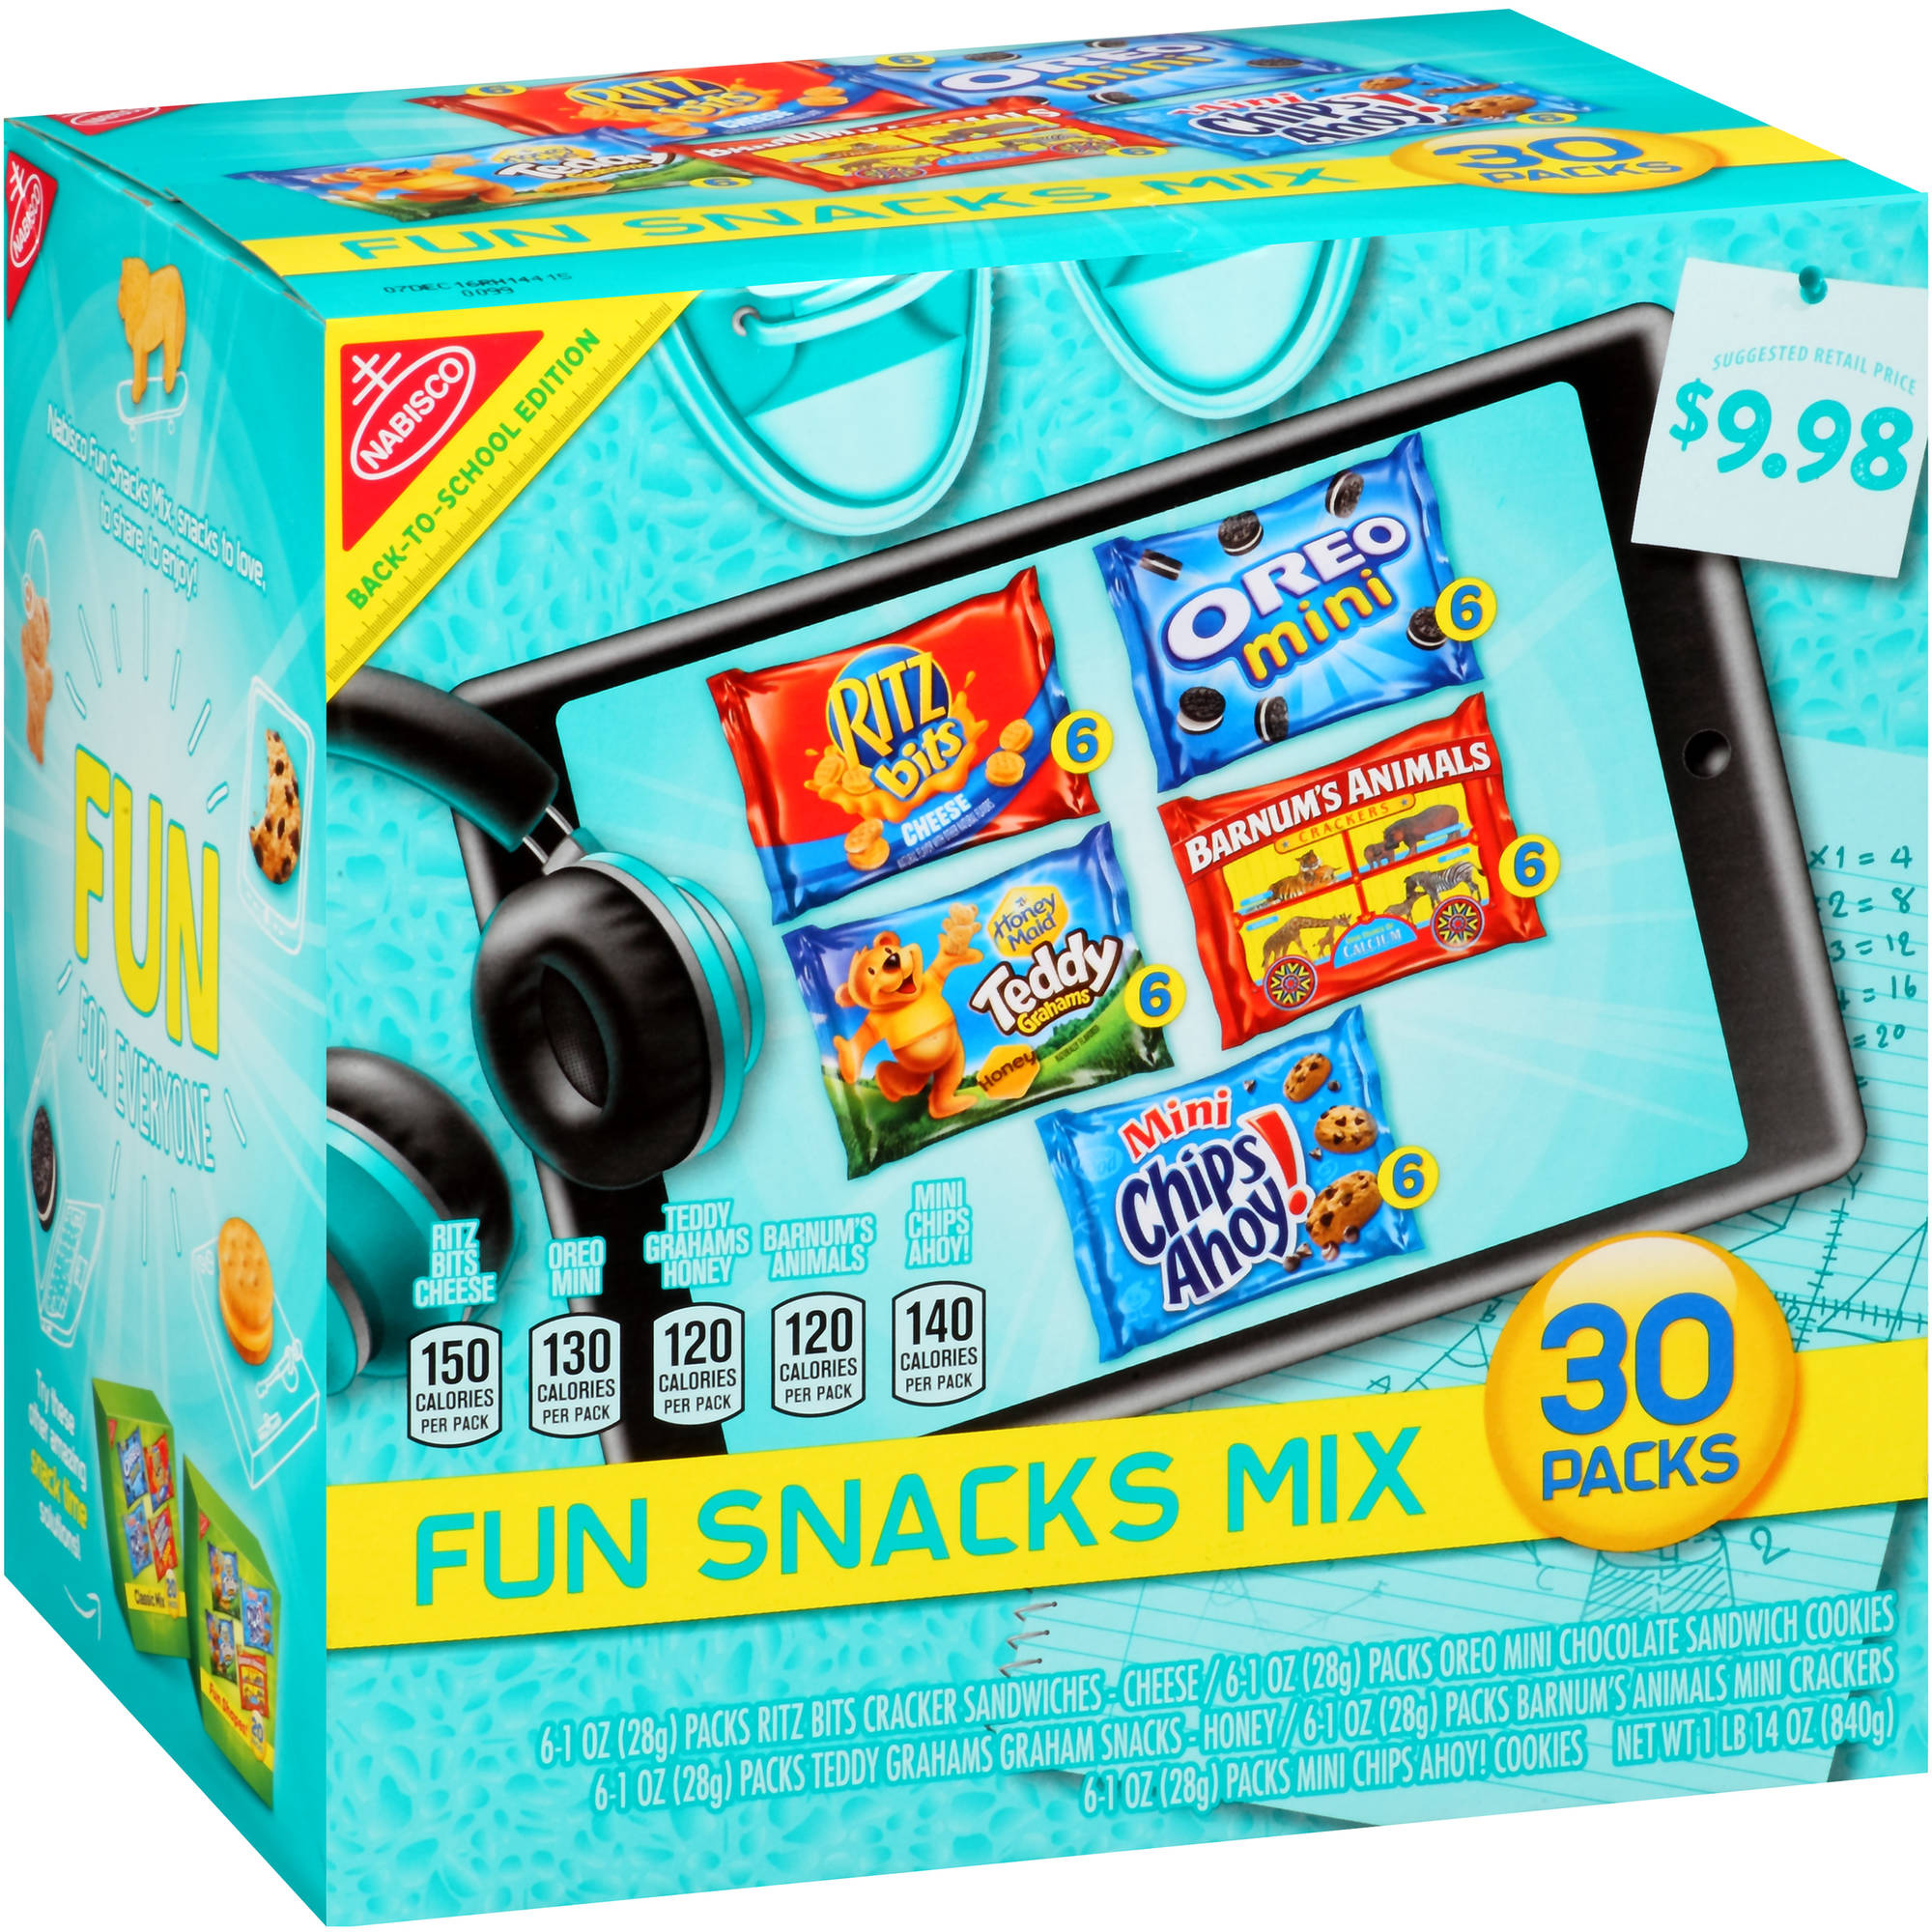 Nabisco Fun Snacks Mix Variety Pack, 1 oz, 30 count